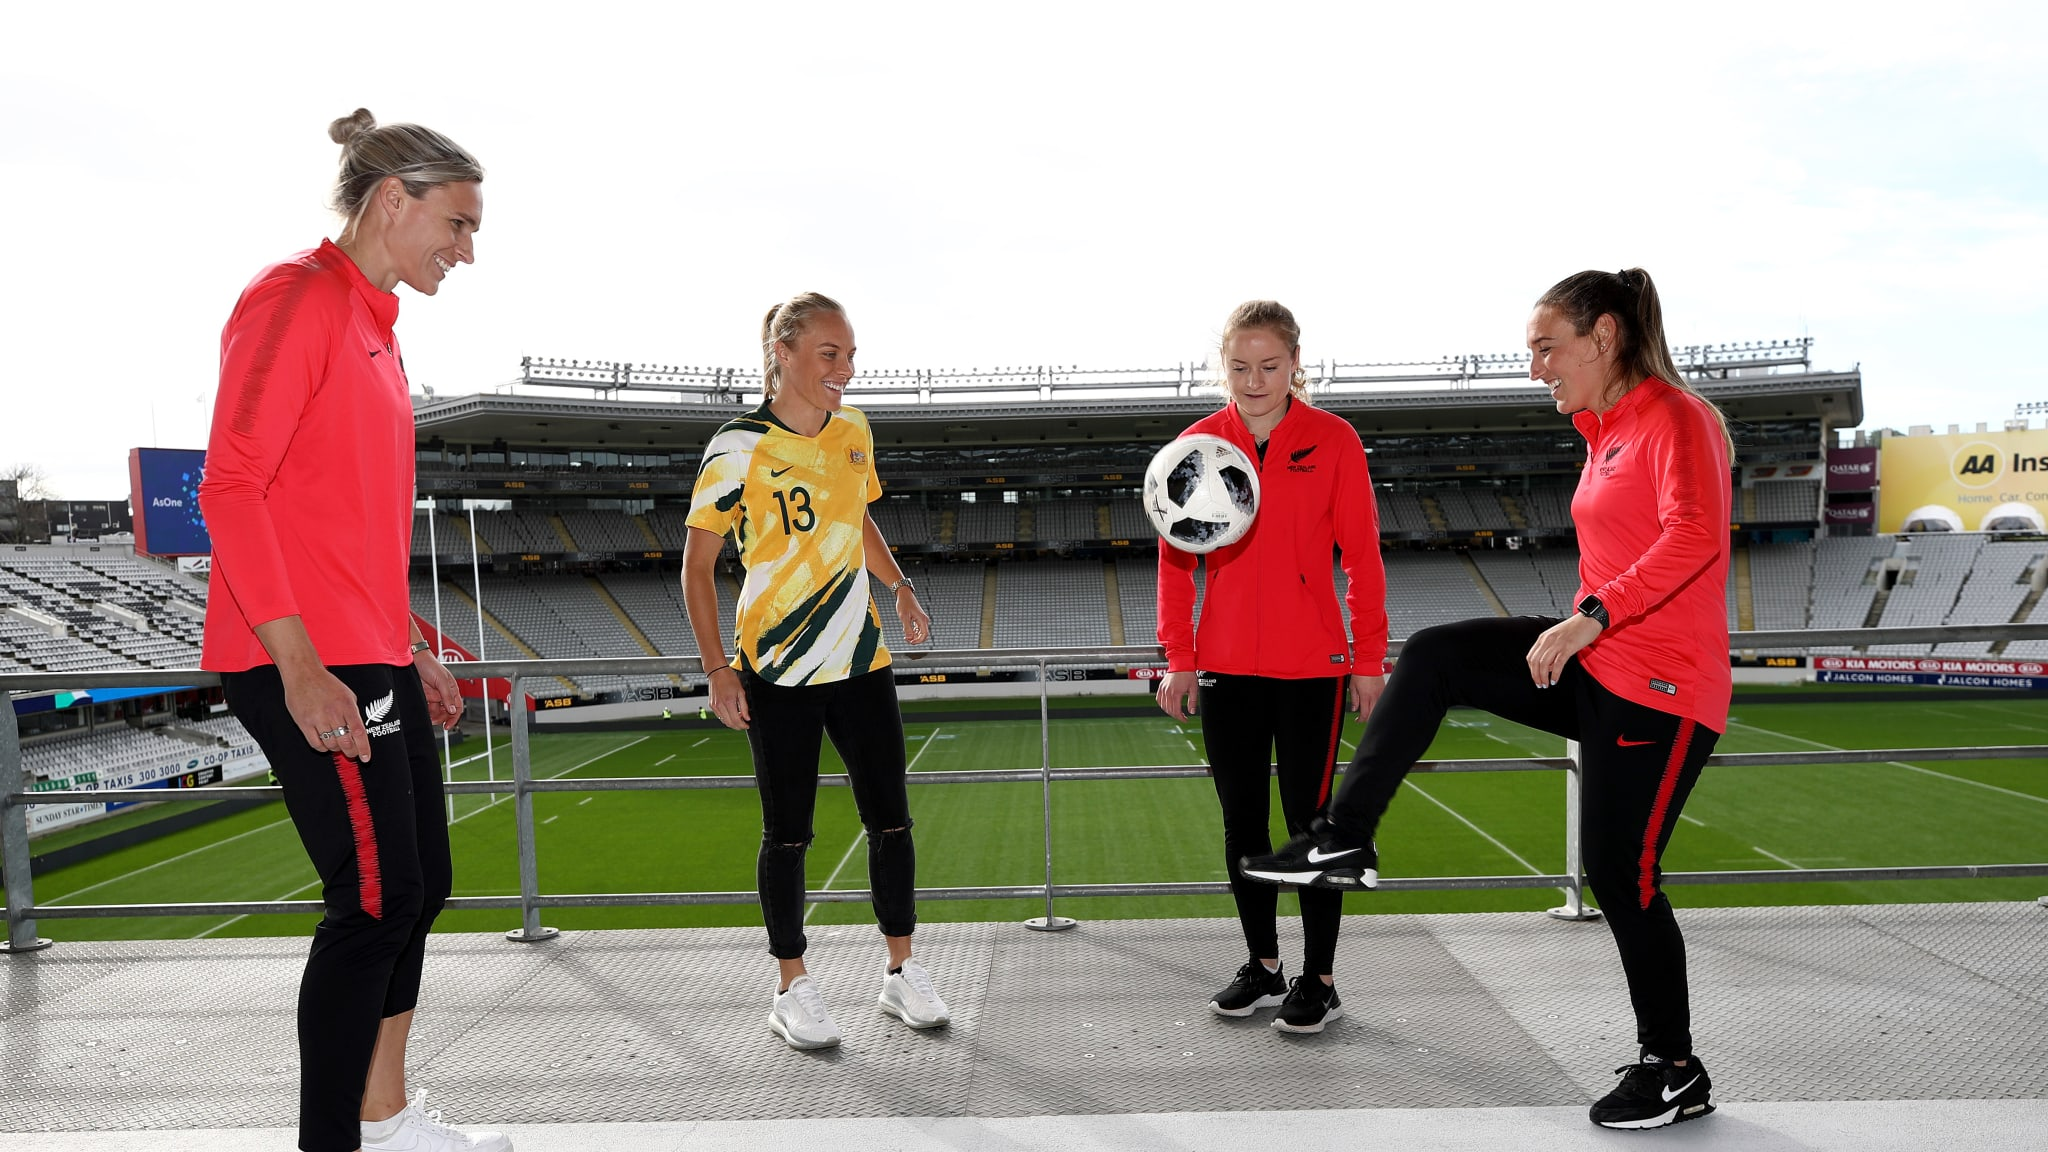 Hannah Wilkinson, Tameka Yallop, Paige Satchell and Annalie Longo do keepy-ups